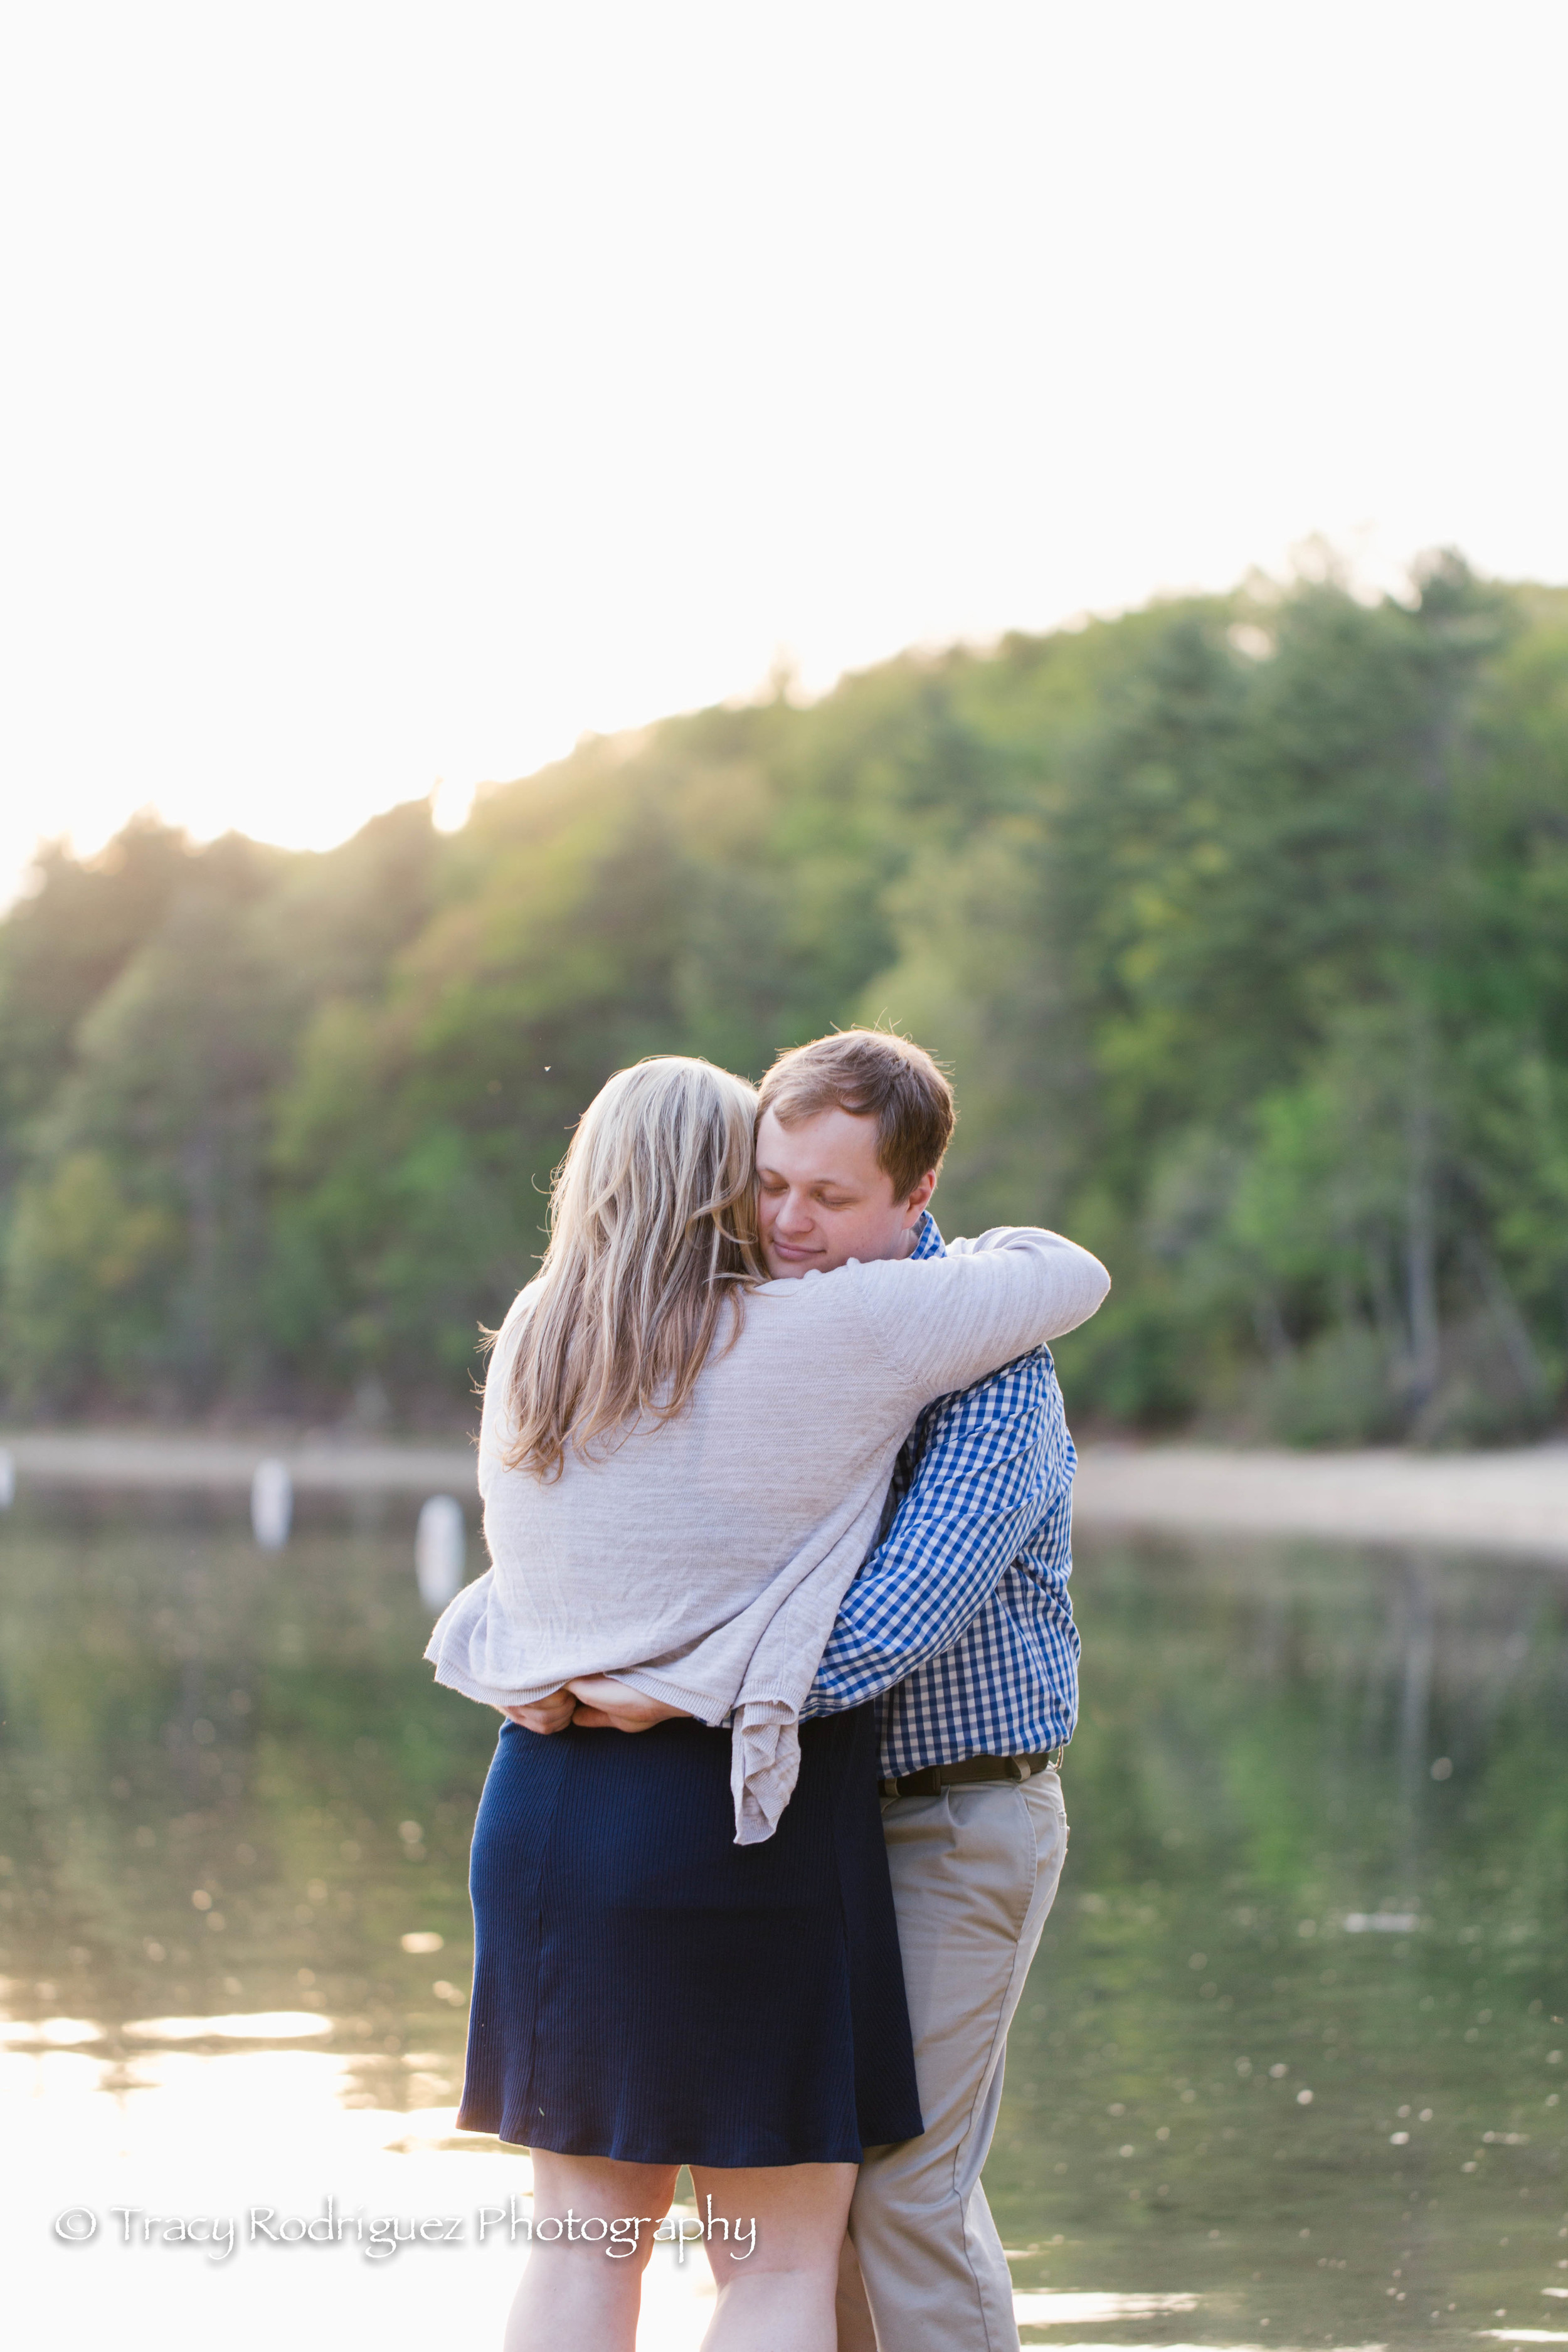 TracyRodriguezPhotography-Engagement-LowRes-77.jpg